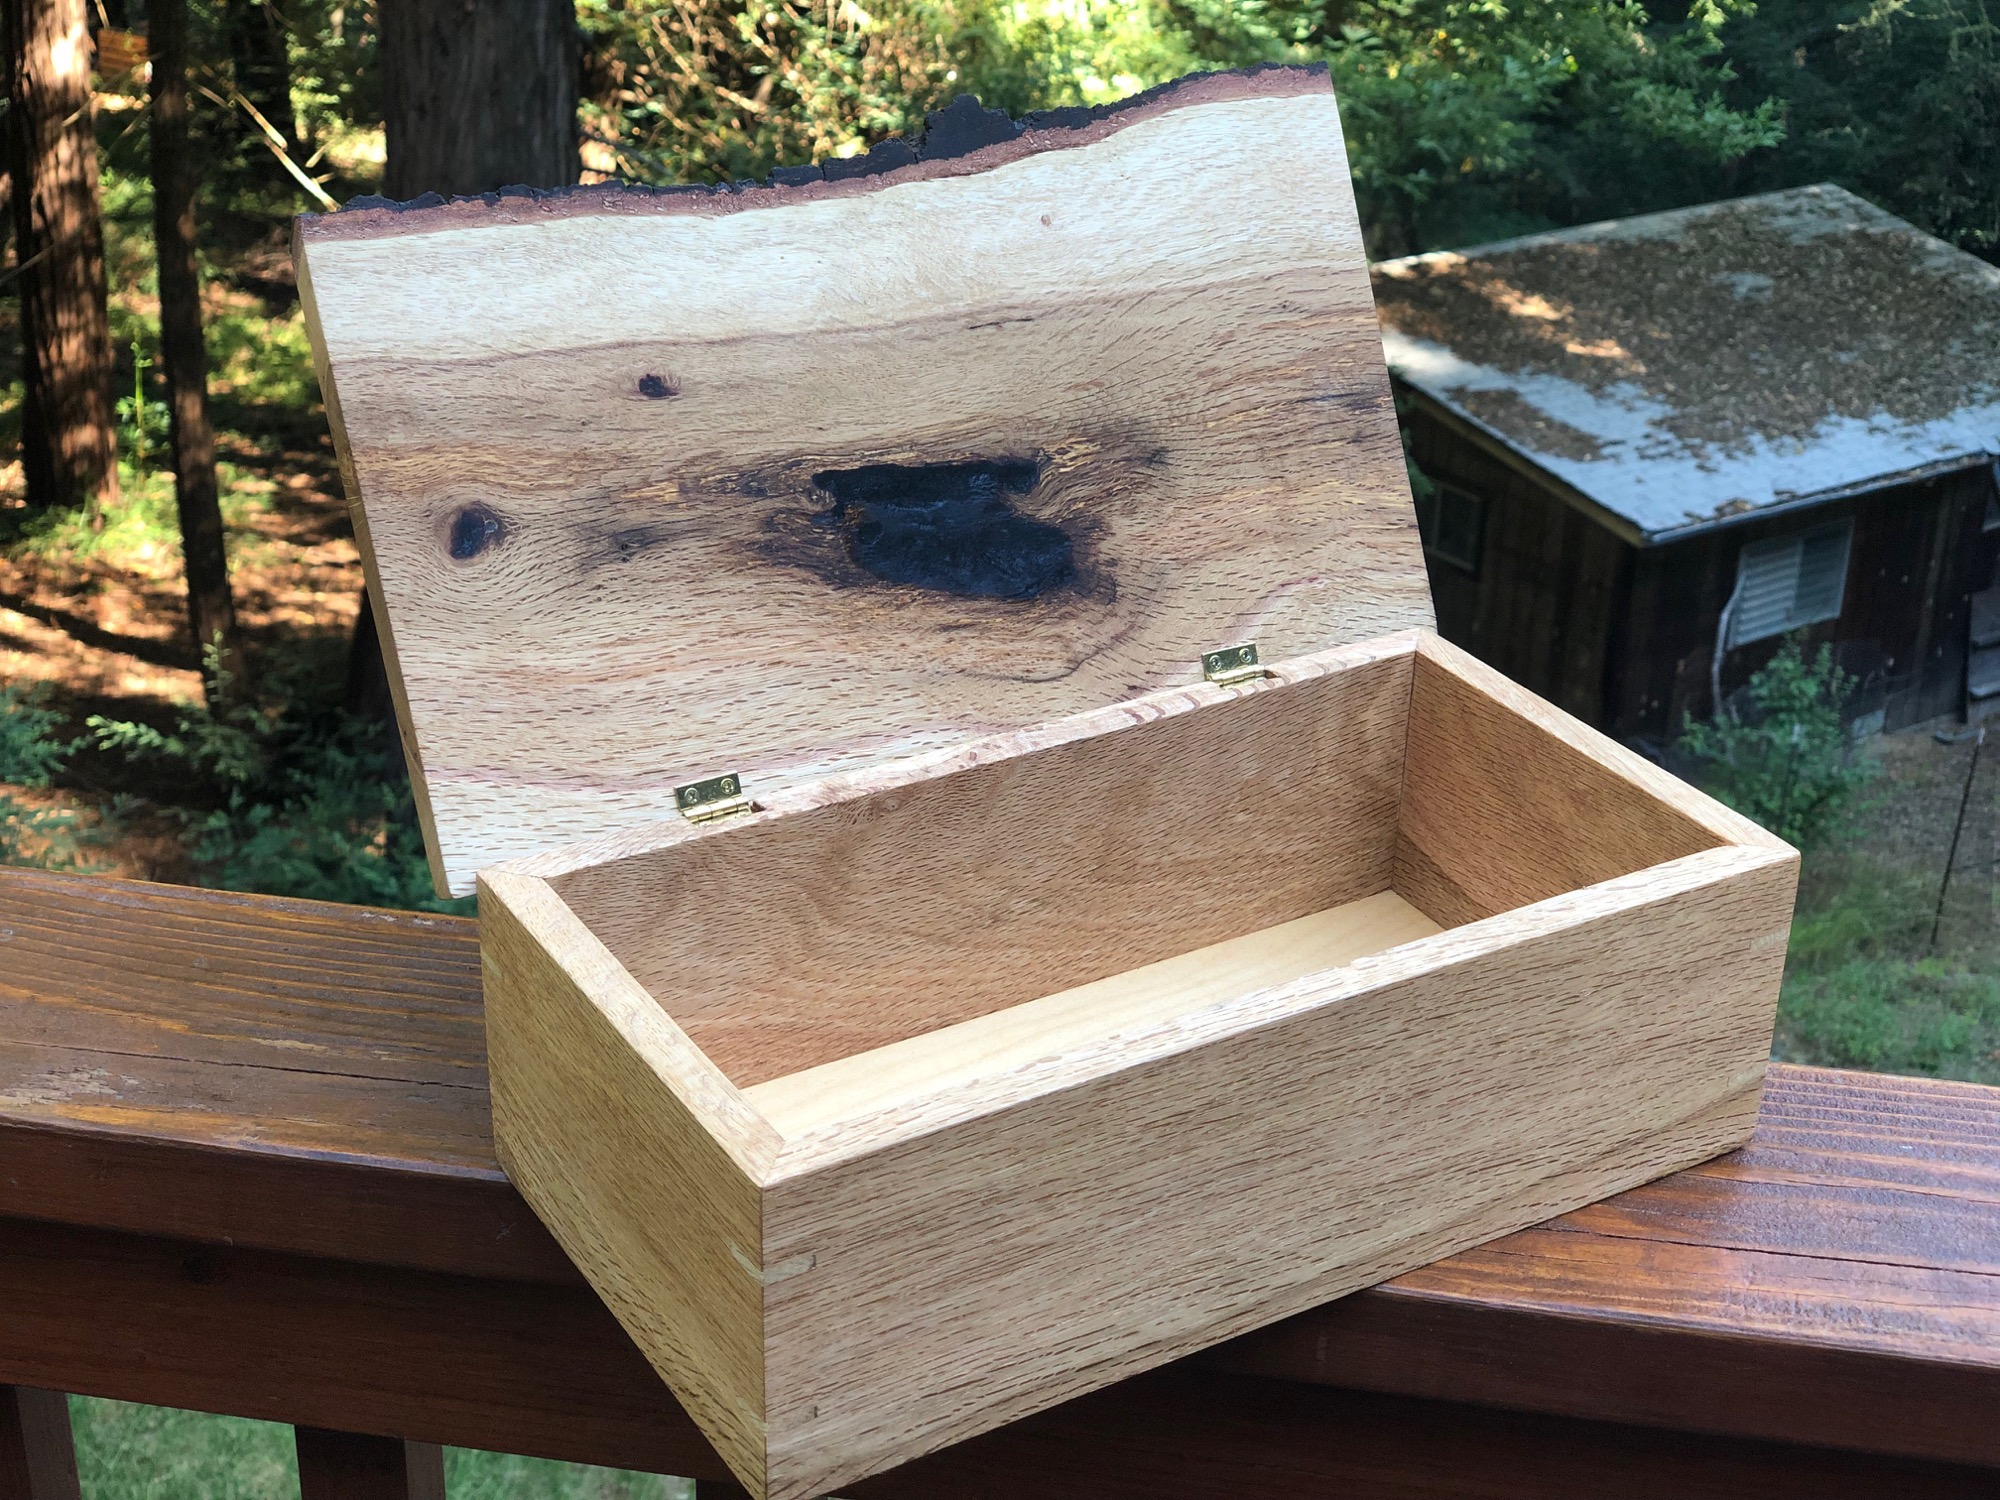 Live edge wood box with top open